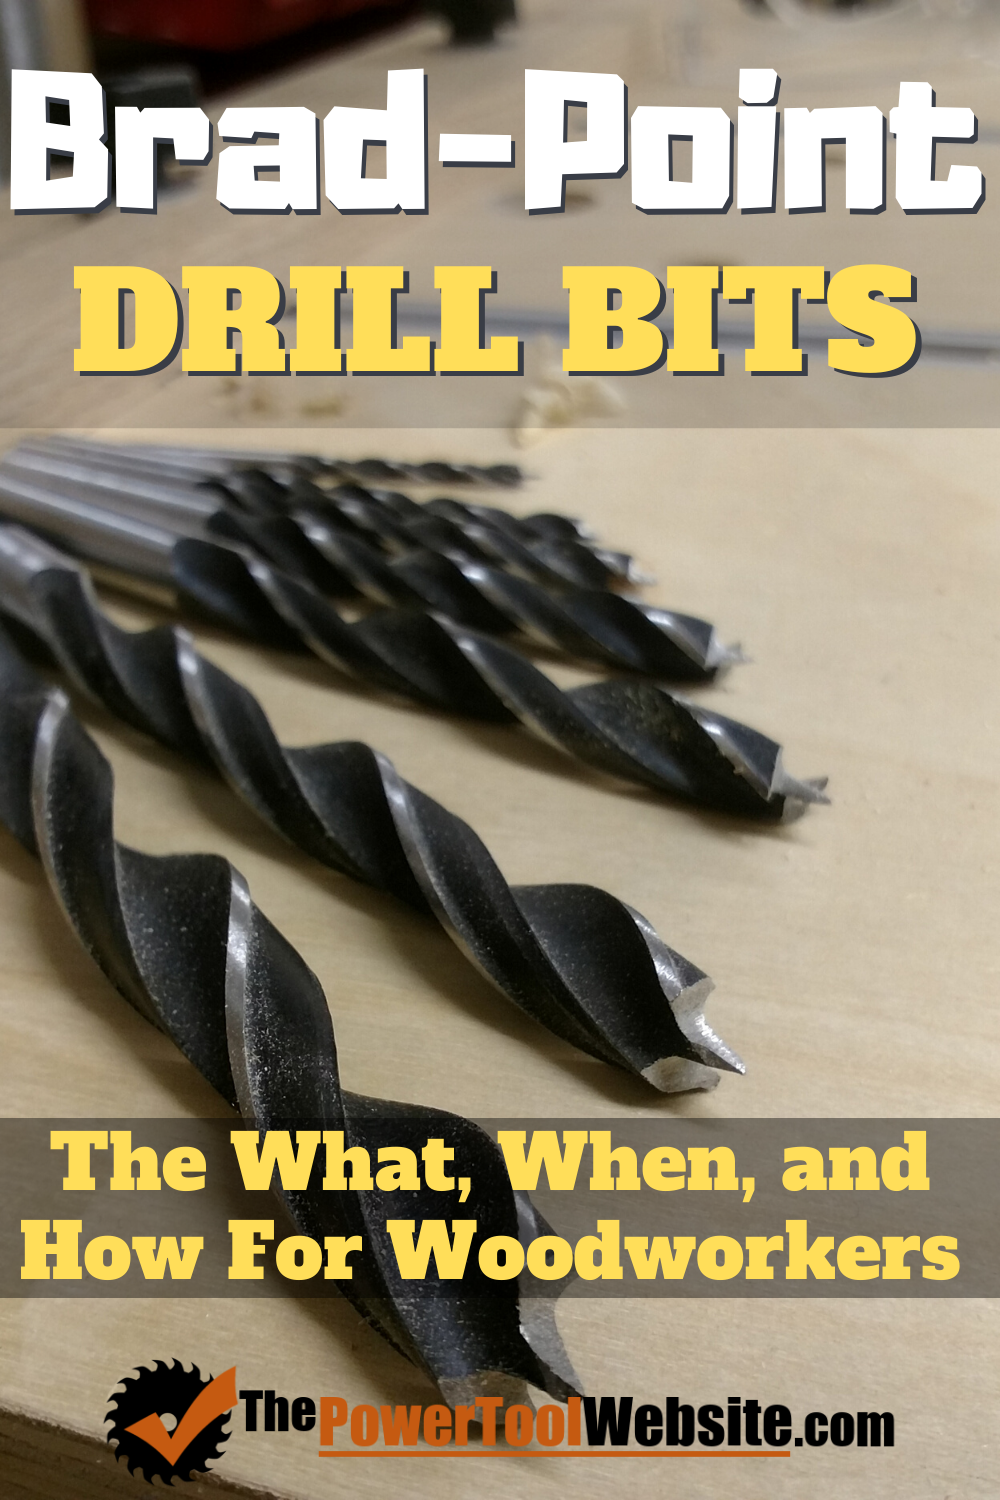 Brad Point Drill Bits - The What, When, and How For Woodworkers